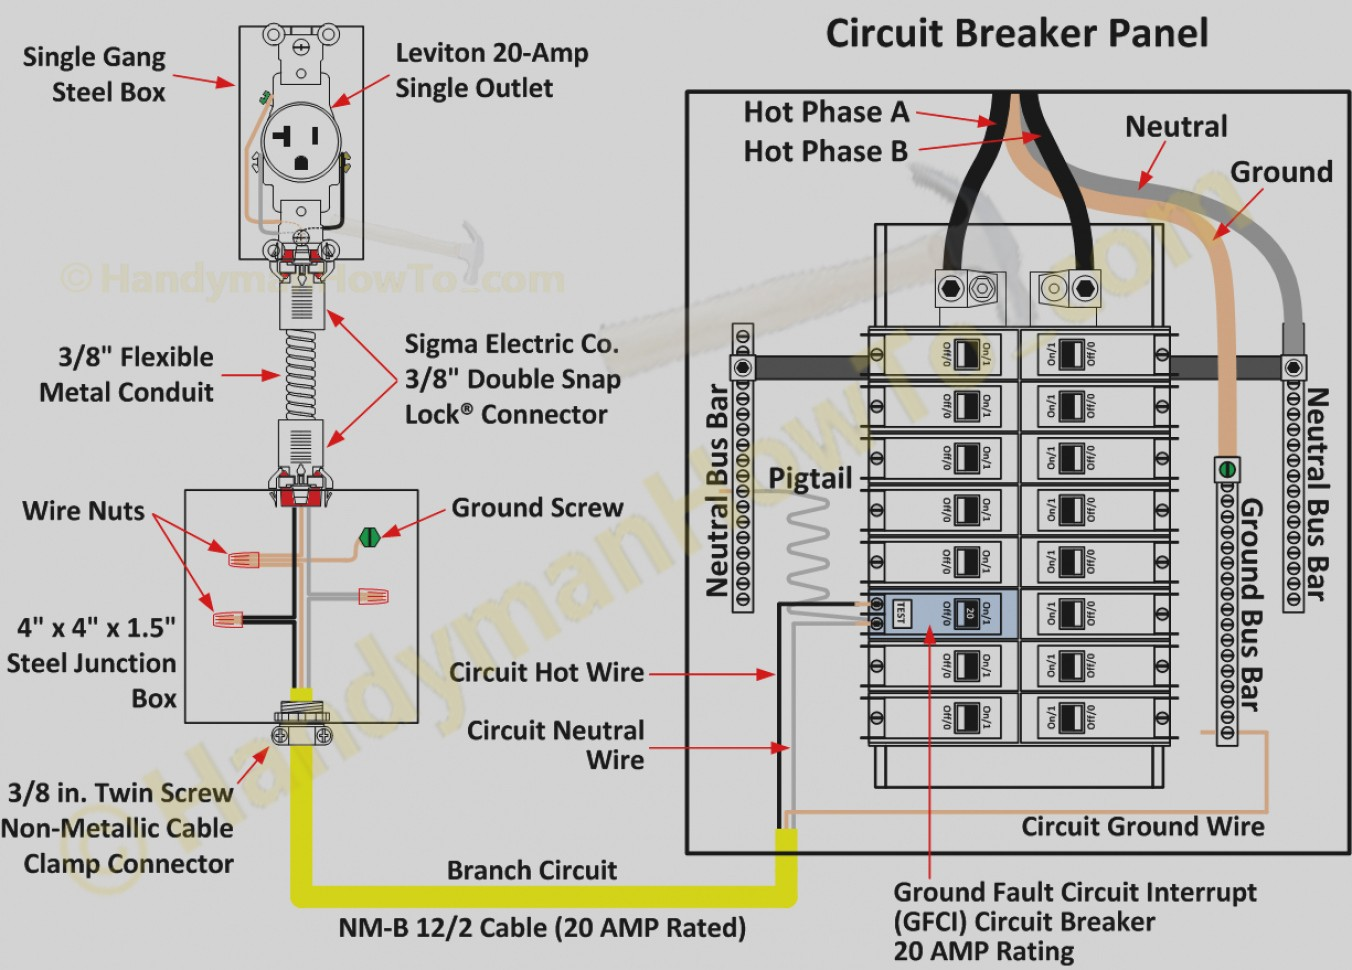 circuit breaker panel wiring diagram unique wiring diagram image rh mainetreasurechest com electric panel wiring diagram electric control panel wiring diagram